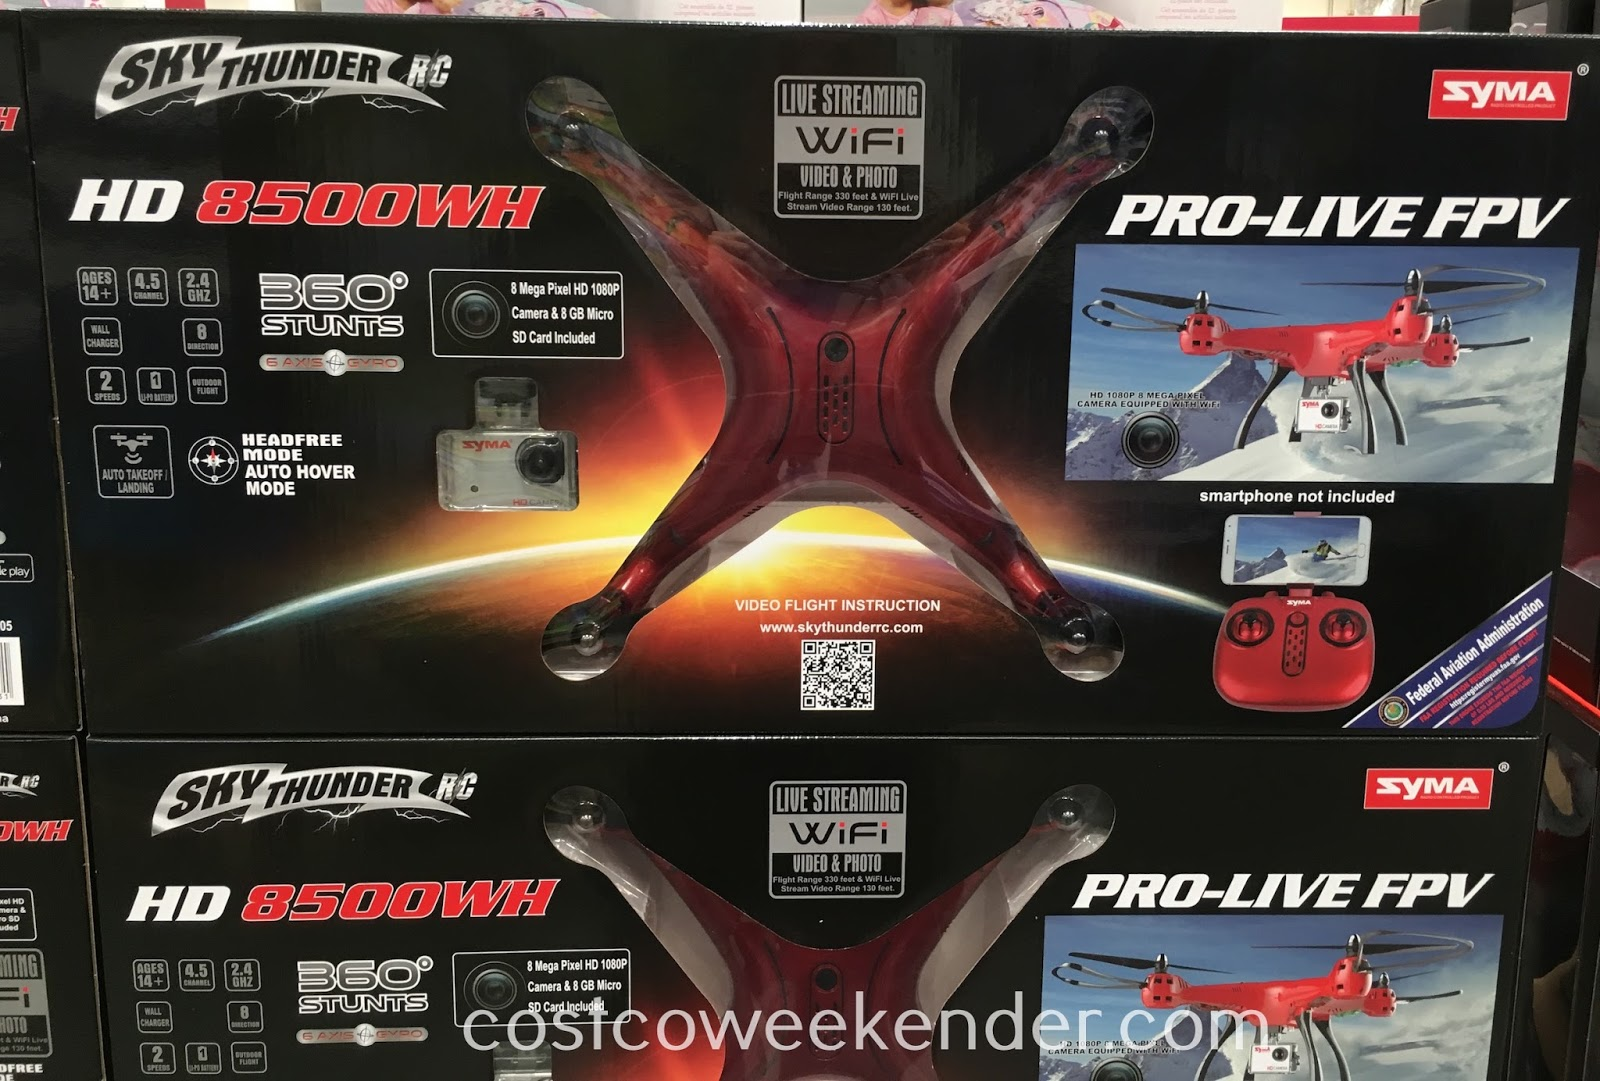 Take flight and get a whole new perspective with the Sky Thunder RC HD 8500WH Drone